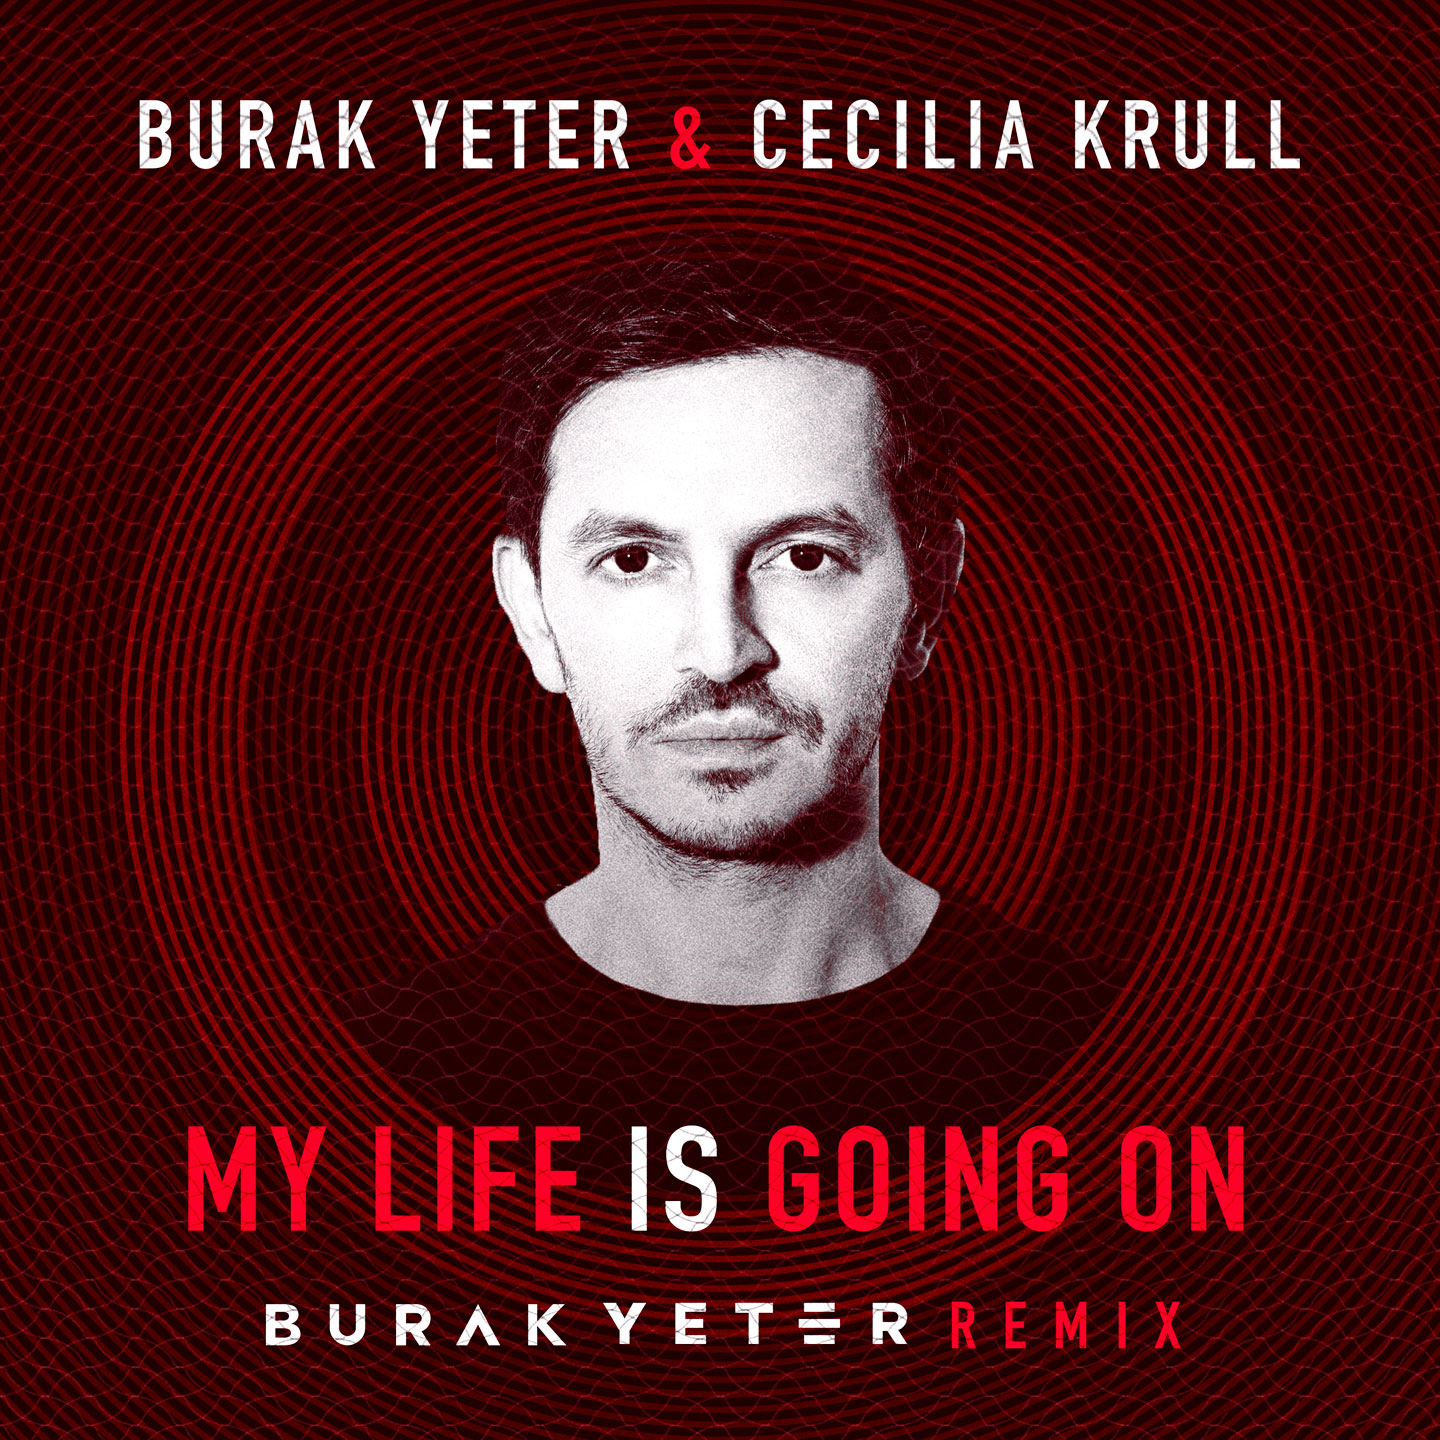 Burak Yeter & Cecilia Krull - My Life Is Going On (Burak Yeter Remix) (Lyric Video)